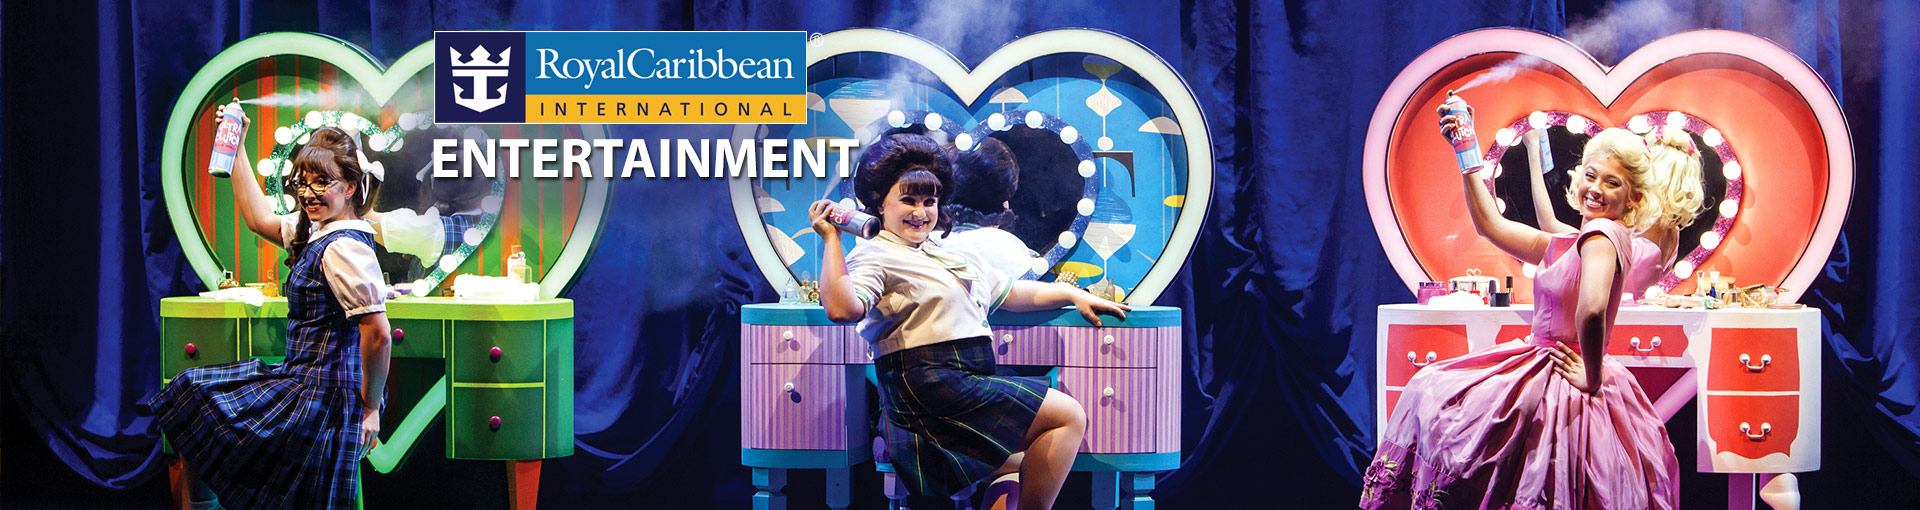 Royal Caribbean Entertainment